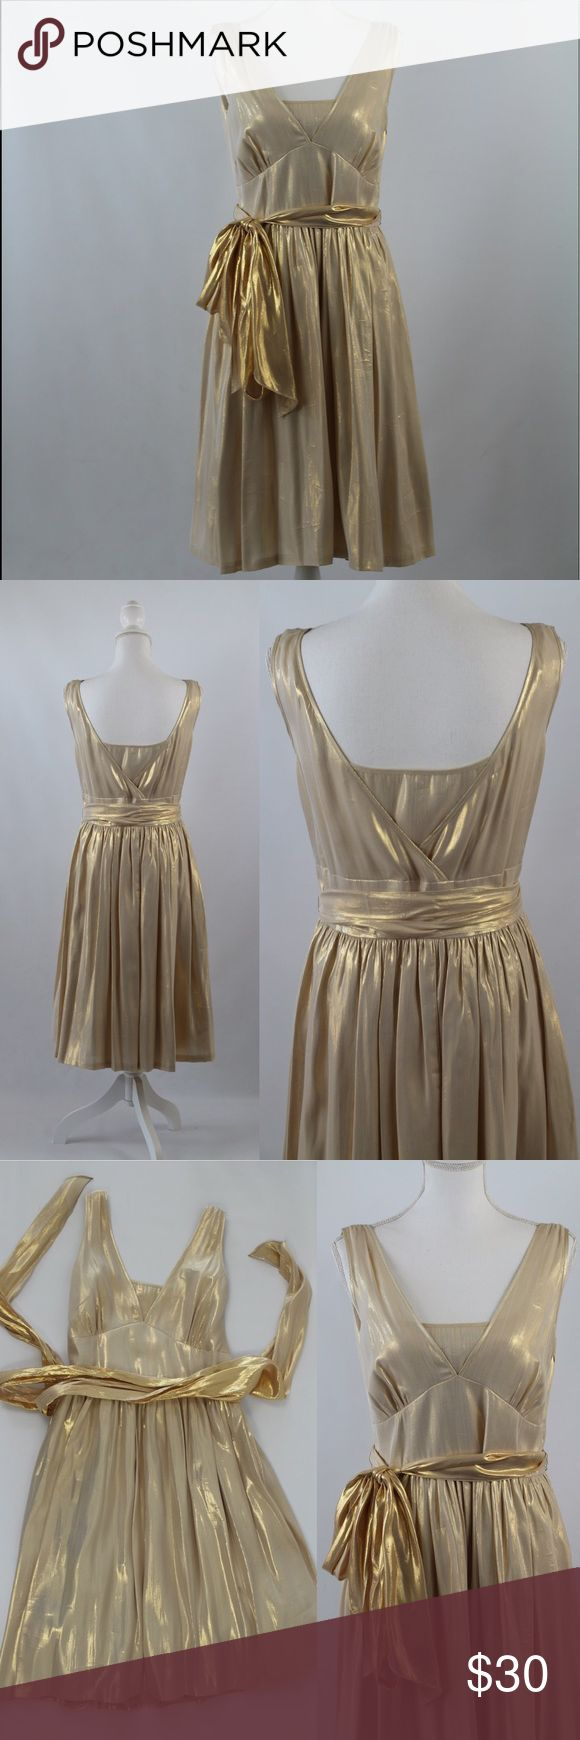 Calvin Klein Silk Blend Metallic Party Dress This festive, shimmery dress by Calvin Klein is double lined and has beautiful movement. Very minimal signs of wear (pictured; the red stain shown is on the INSIDE bodice and not visible whatsoever on the outside - can be removed through dry-cleaning). Size 12. Calvin Klein Dresses Midi